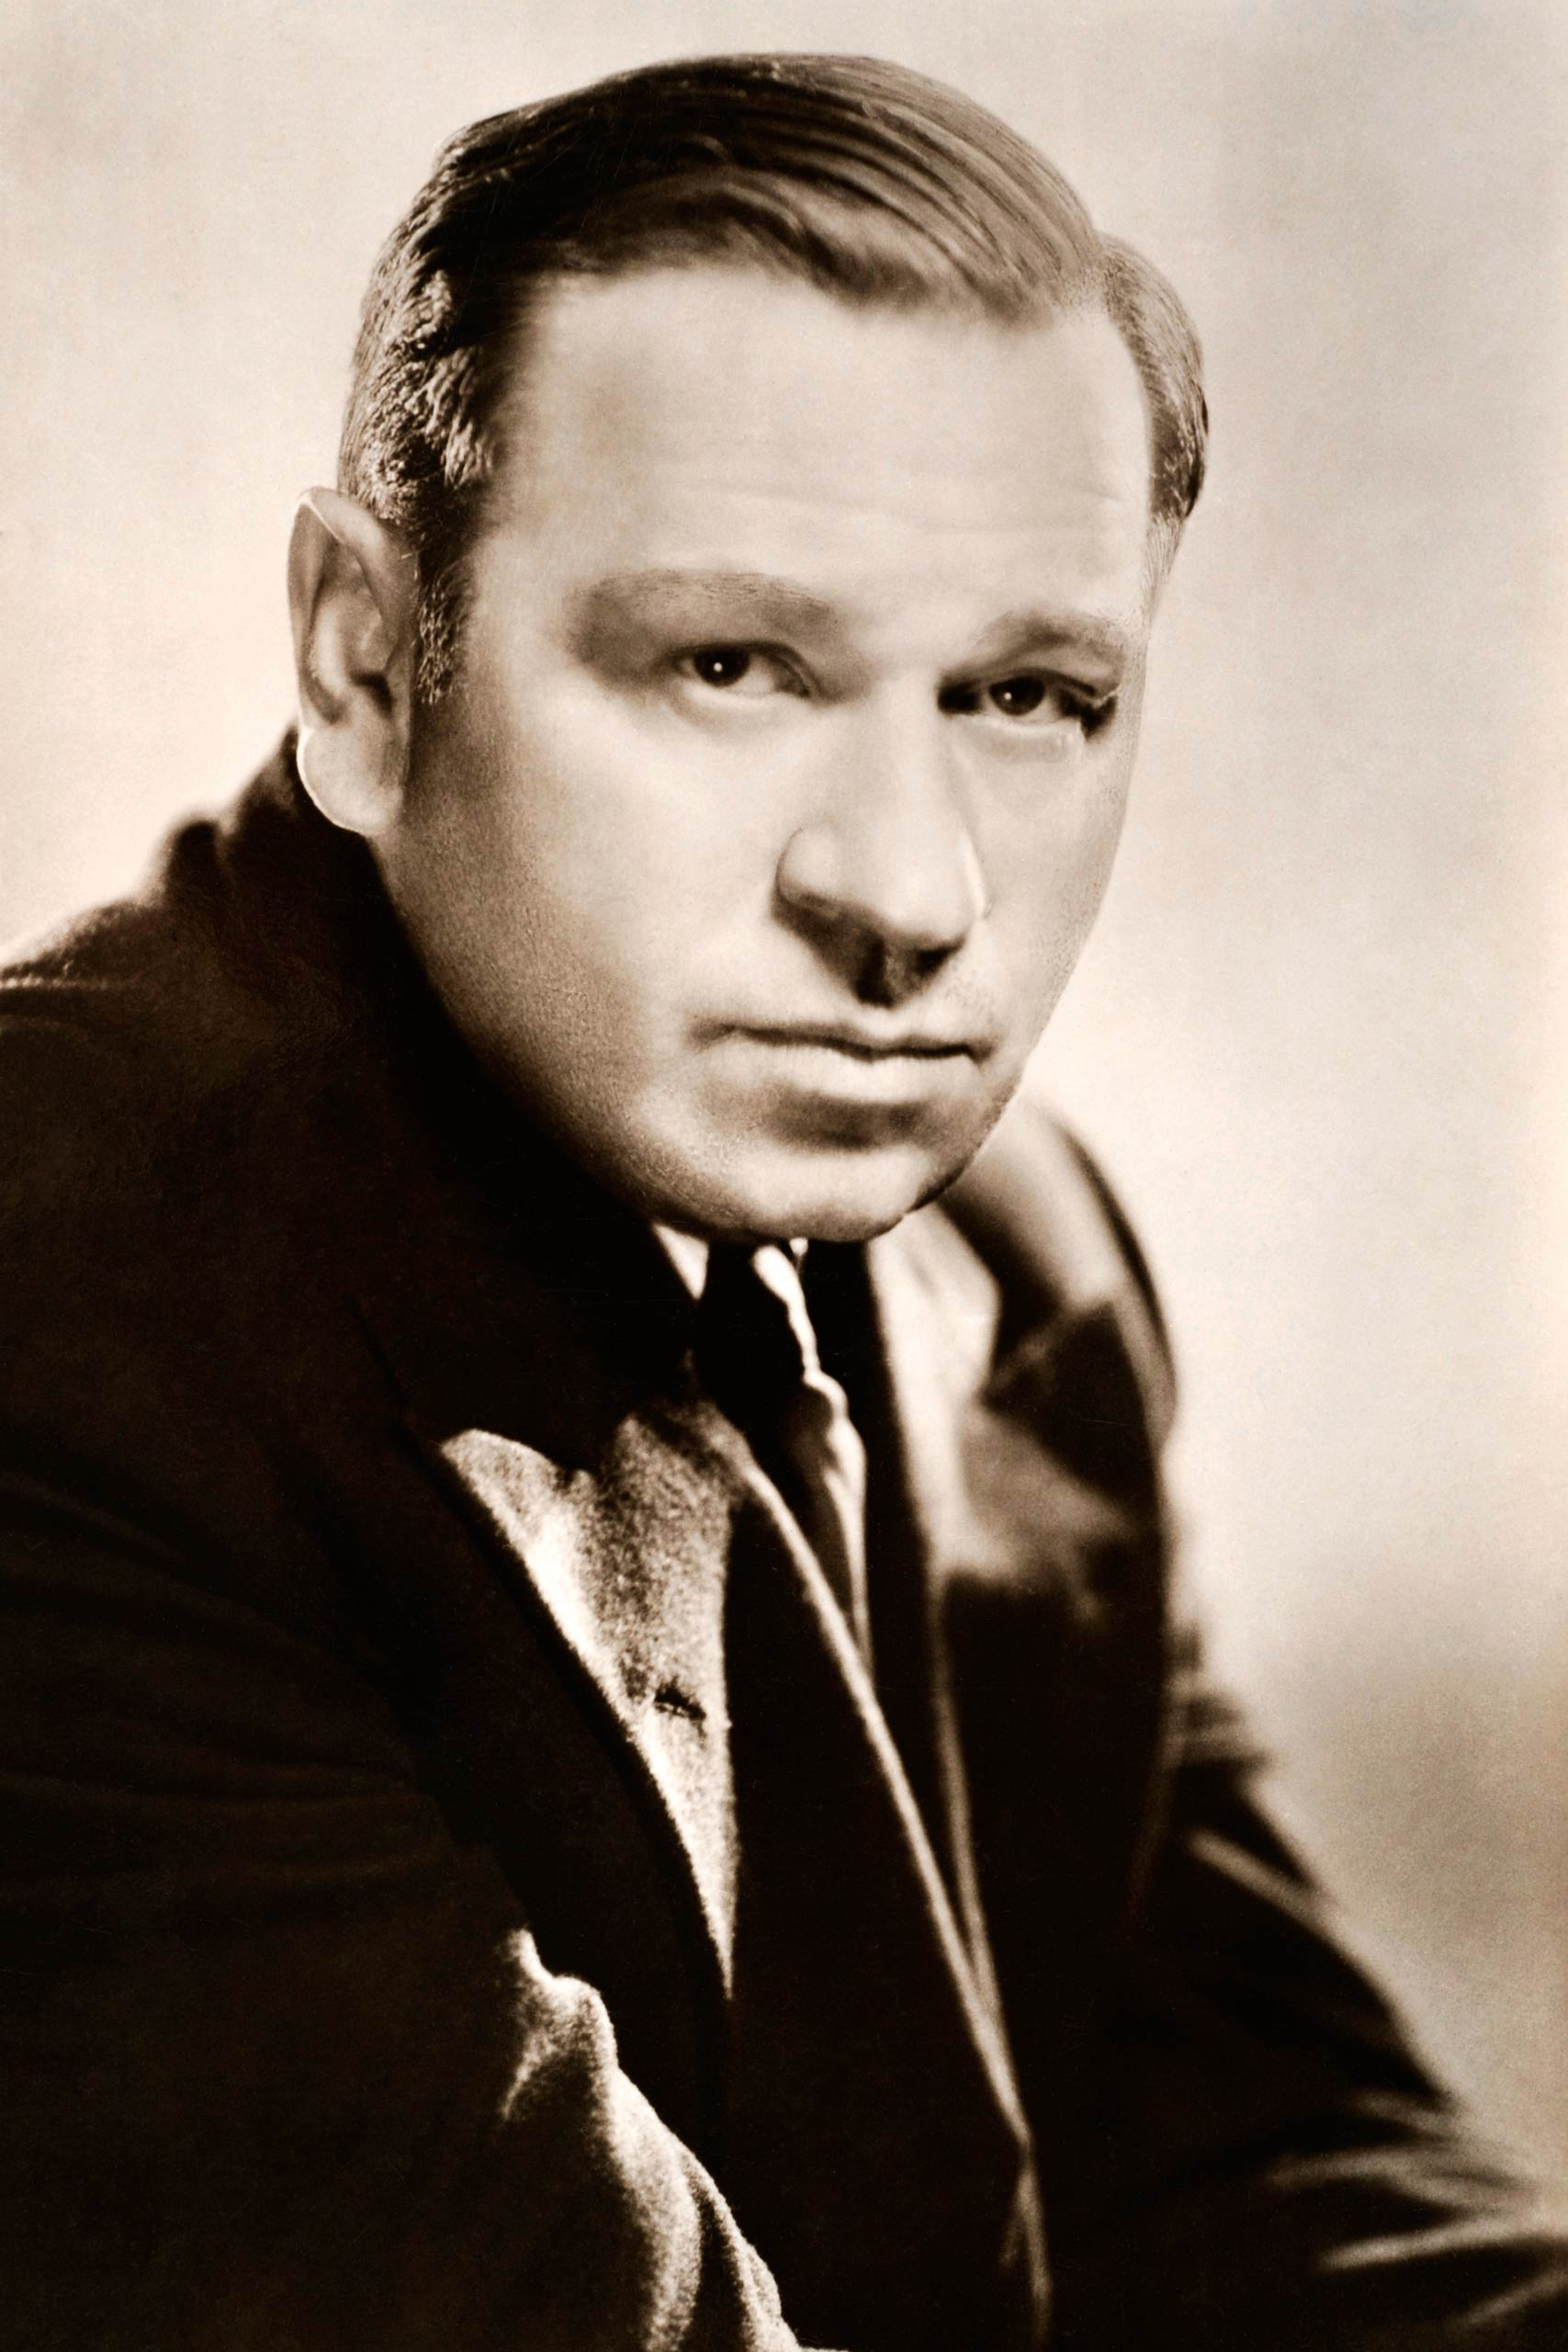 <strong>1933: Wallace Beery - <i>The Champ</i></strong>